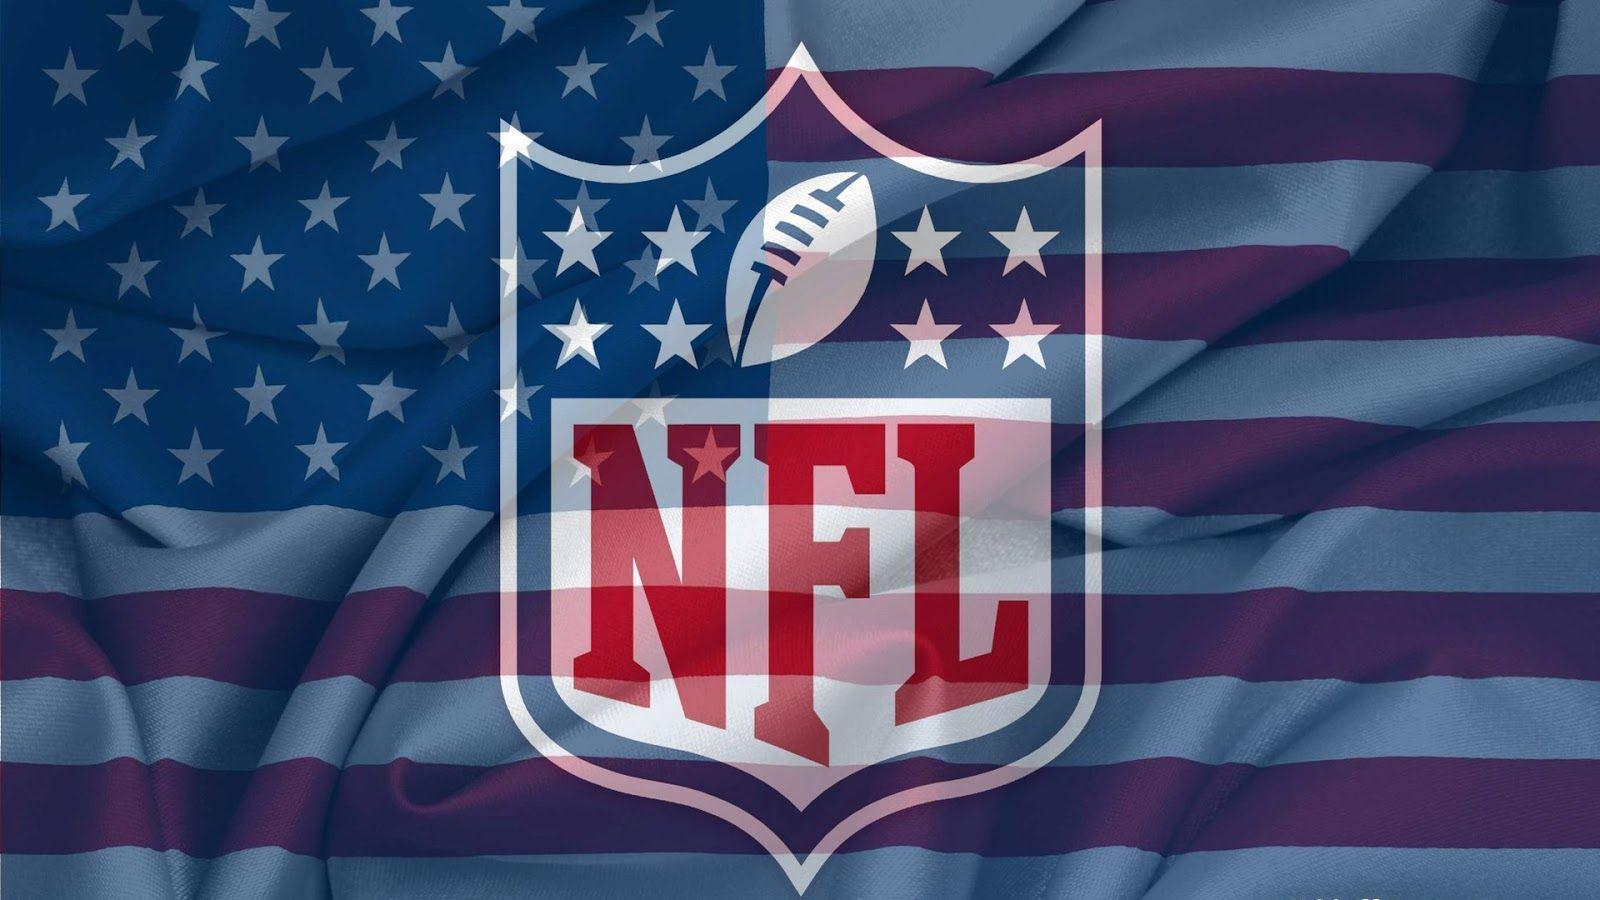 Wallpapers For > Nfl Logo Wallpapers Hd